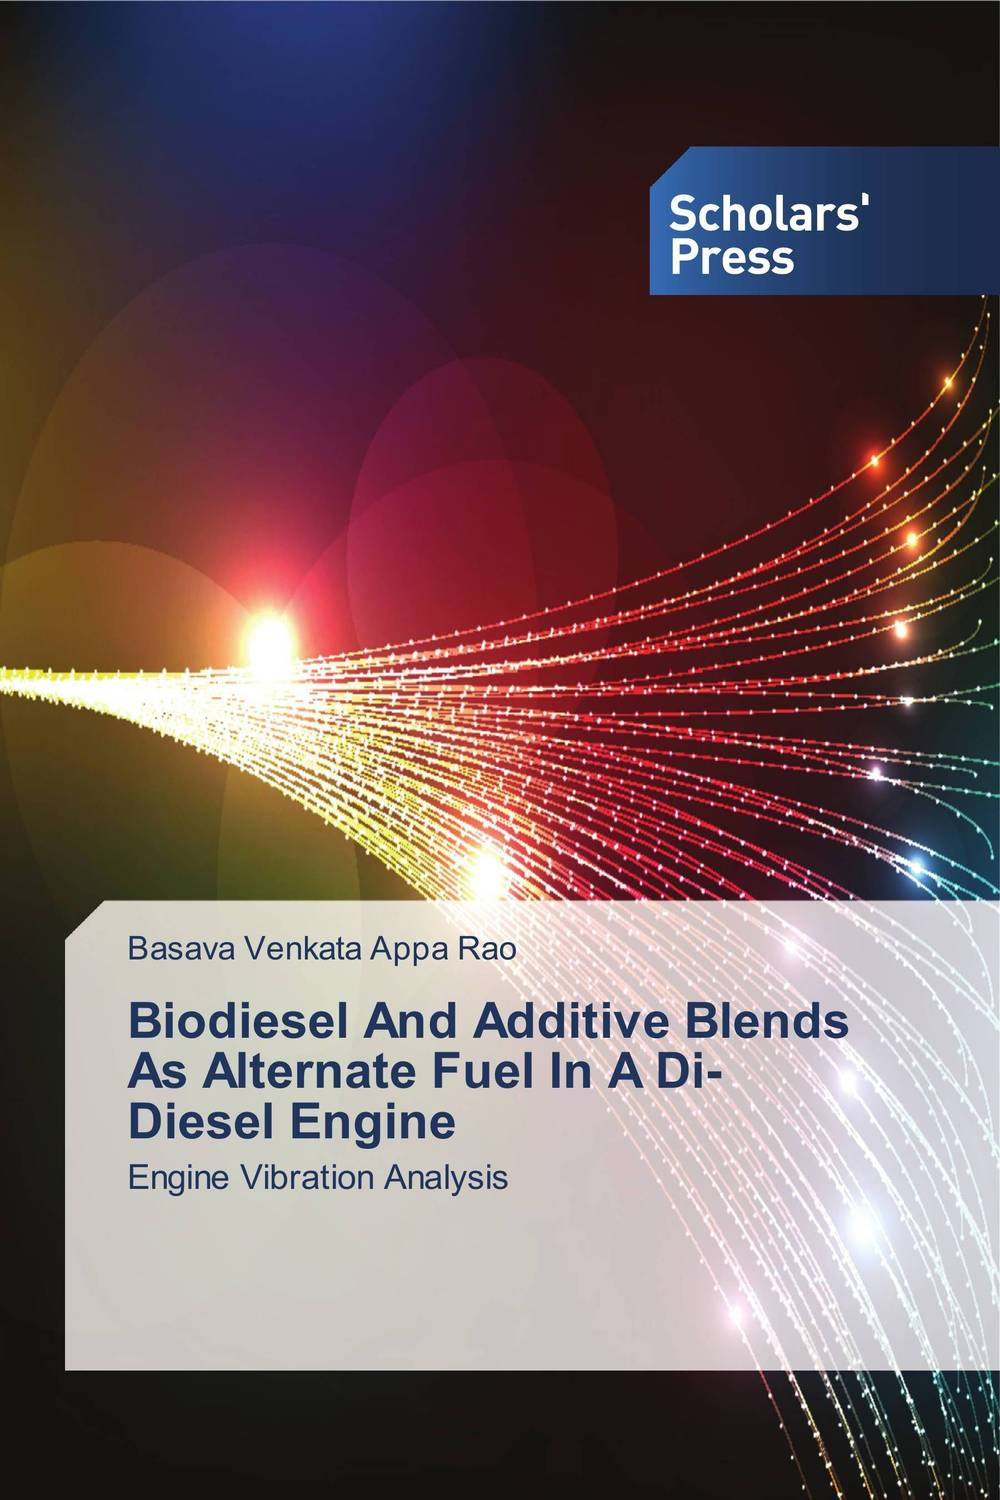 Biodiesel And Additive Blends As Alternate Fuel In A Di- Diesel Engine evaluation of bio diesel as a fuel for diesel engine